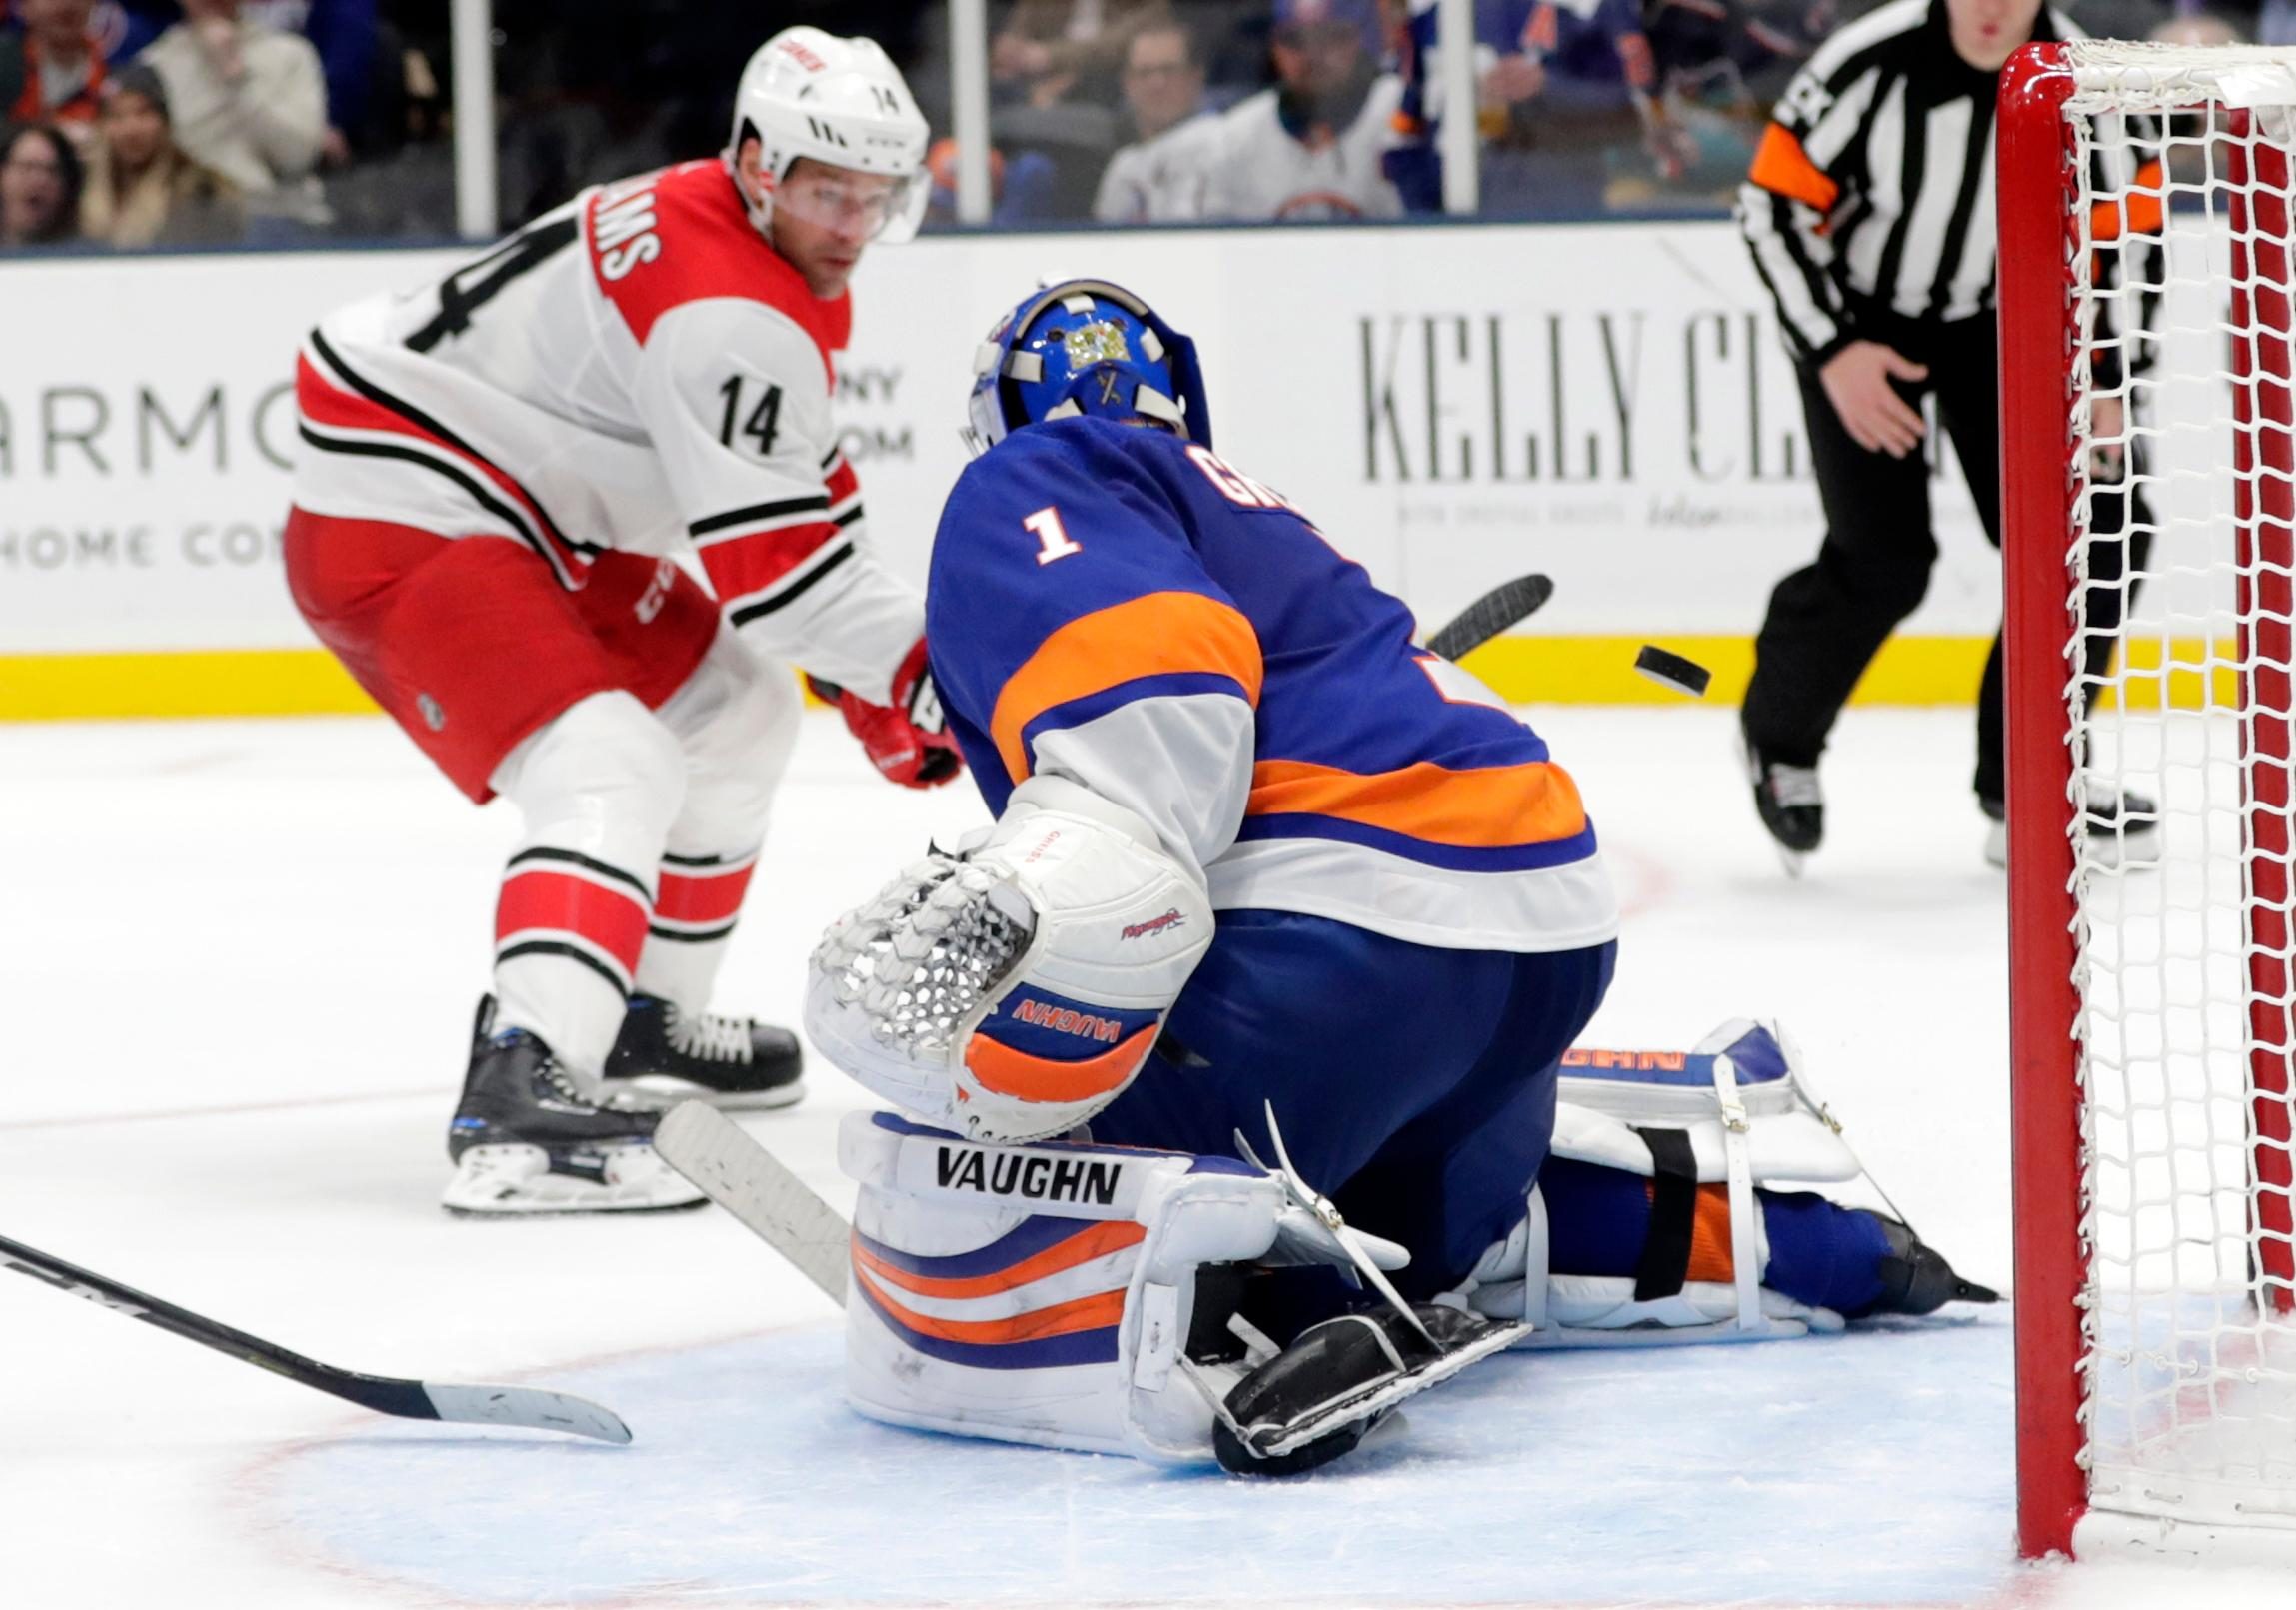 Carolina Hurricanes' Justin Williams (14) shoots the puck past New York Islanders goaltender Thomas Greiss (1) for a goal during the third period of an NHL hockey game Tuesday, Jan. 8, 2019, in New York. The Hurricanes won 4-3. (AP Photo/Frank Franklin II)